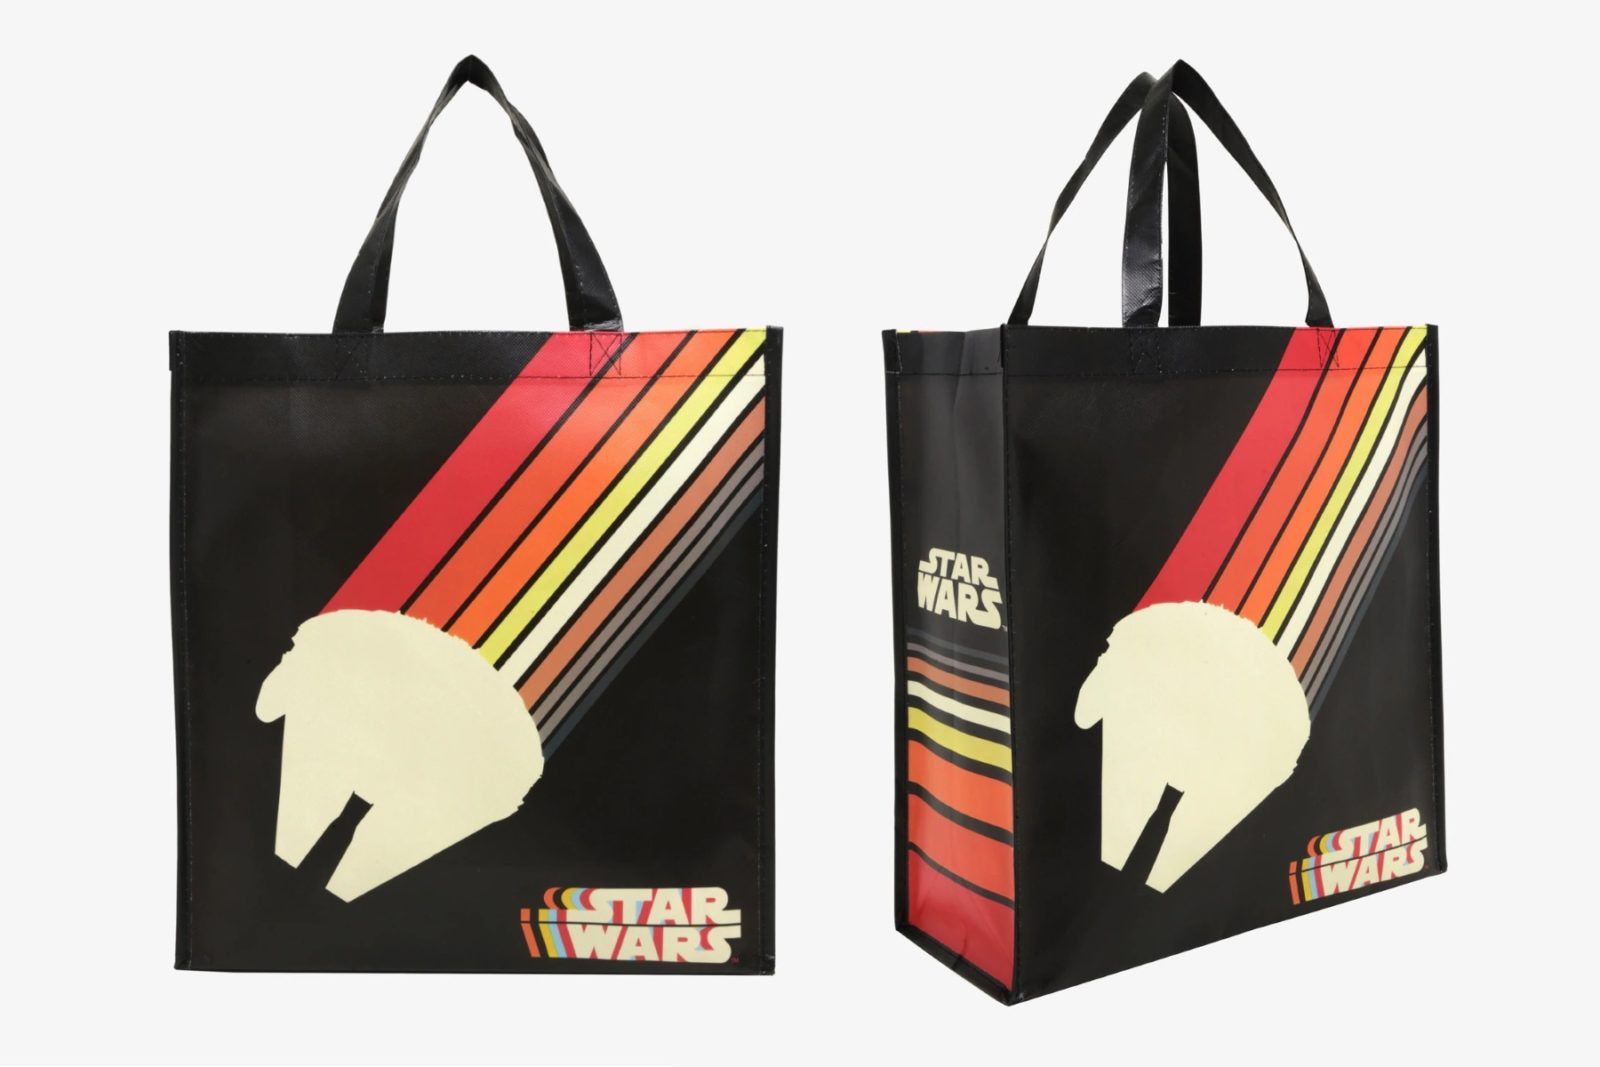 Millennium Falcon Tote Bag at Box Lunch